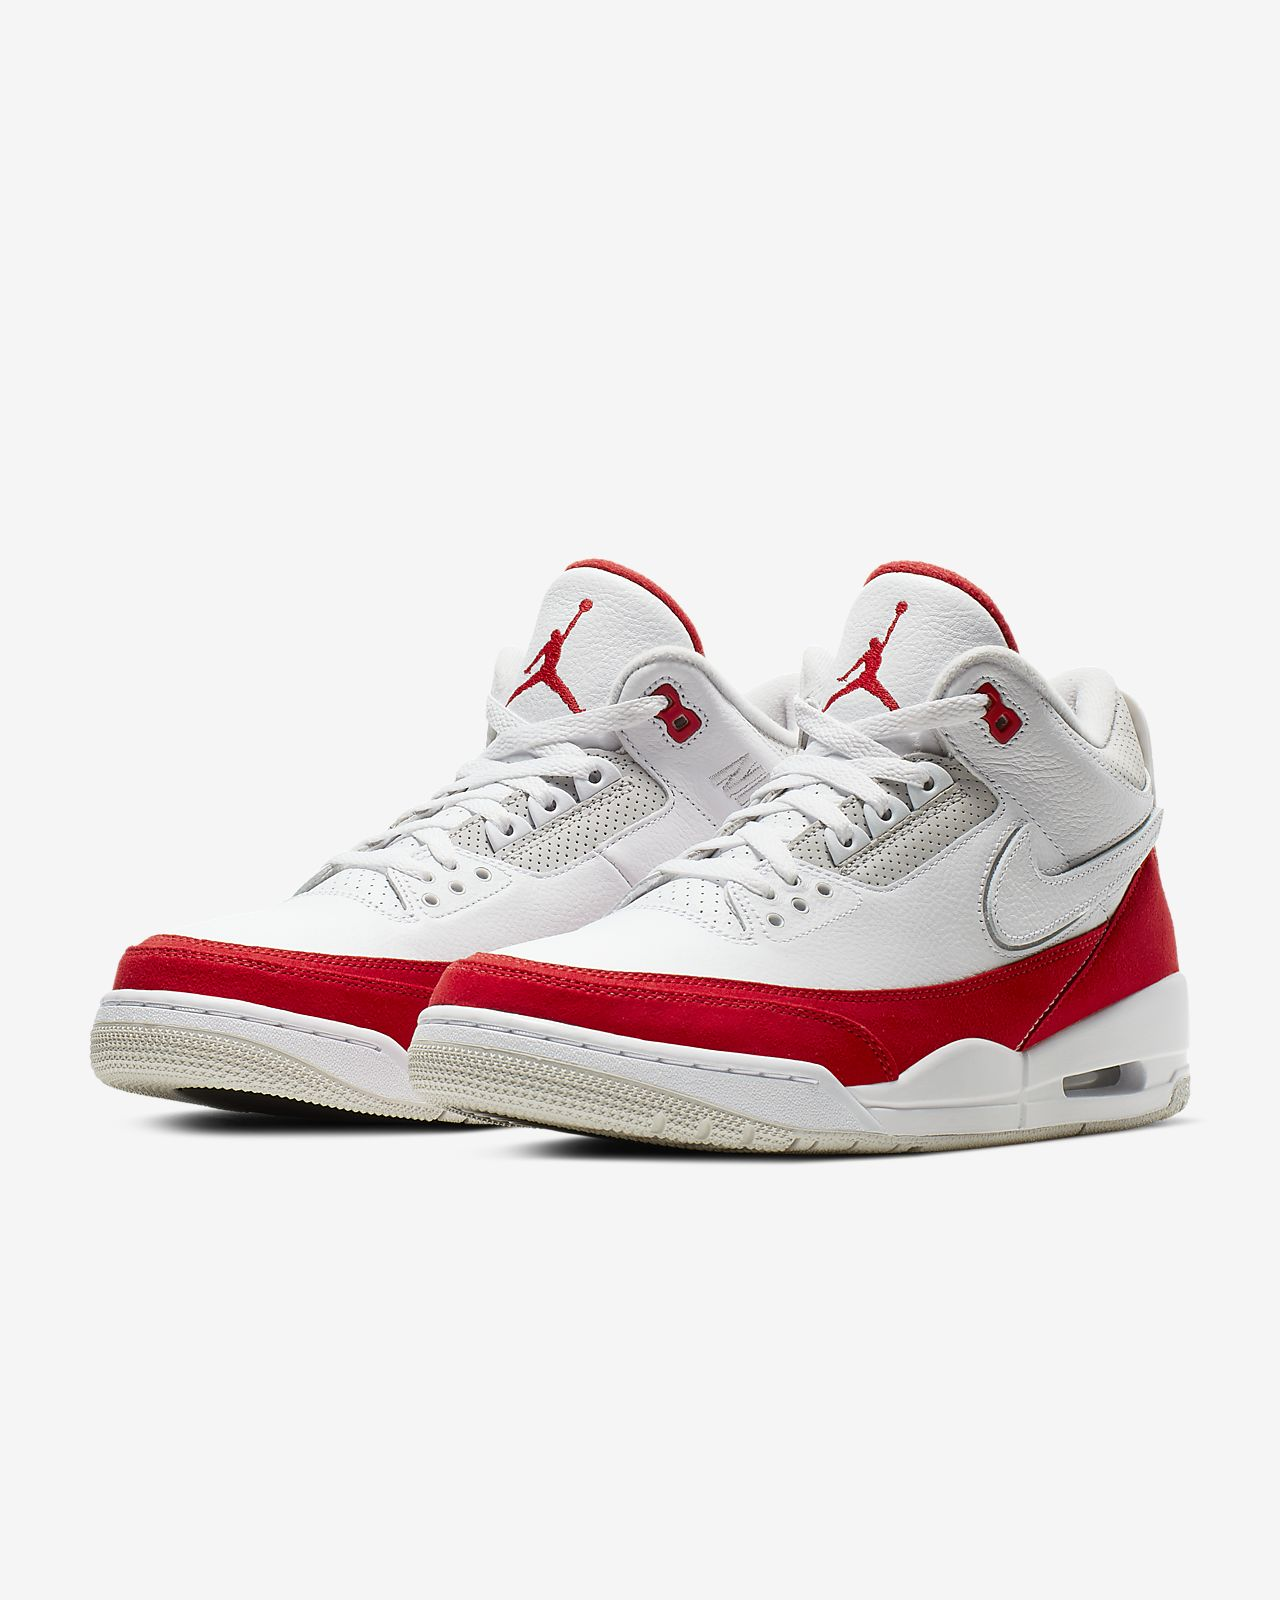 9b71f6cd859320 Air Jordan 3 Retro TH SP Men s Shoe. Nike.com